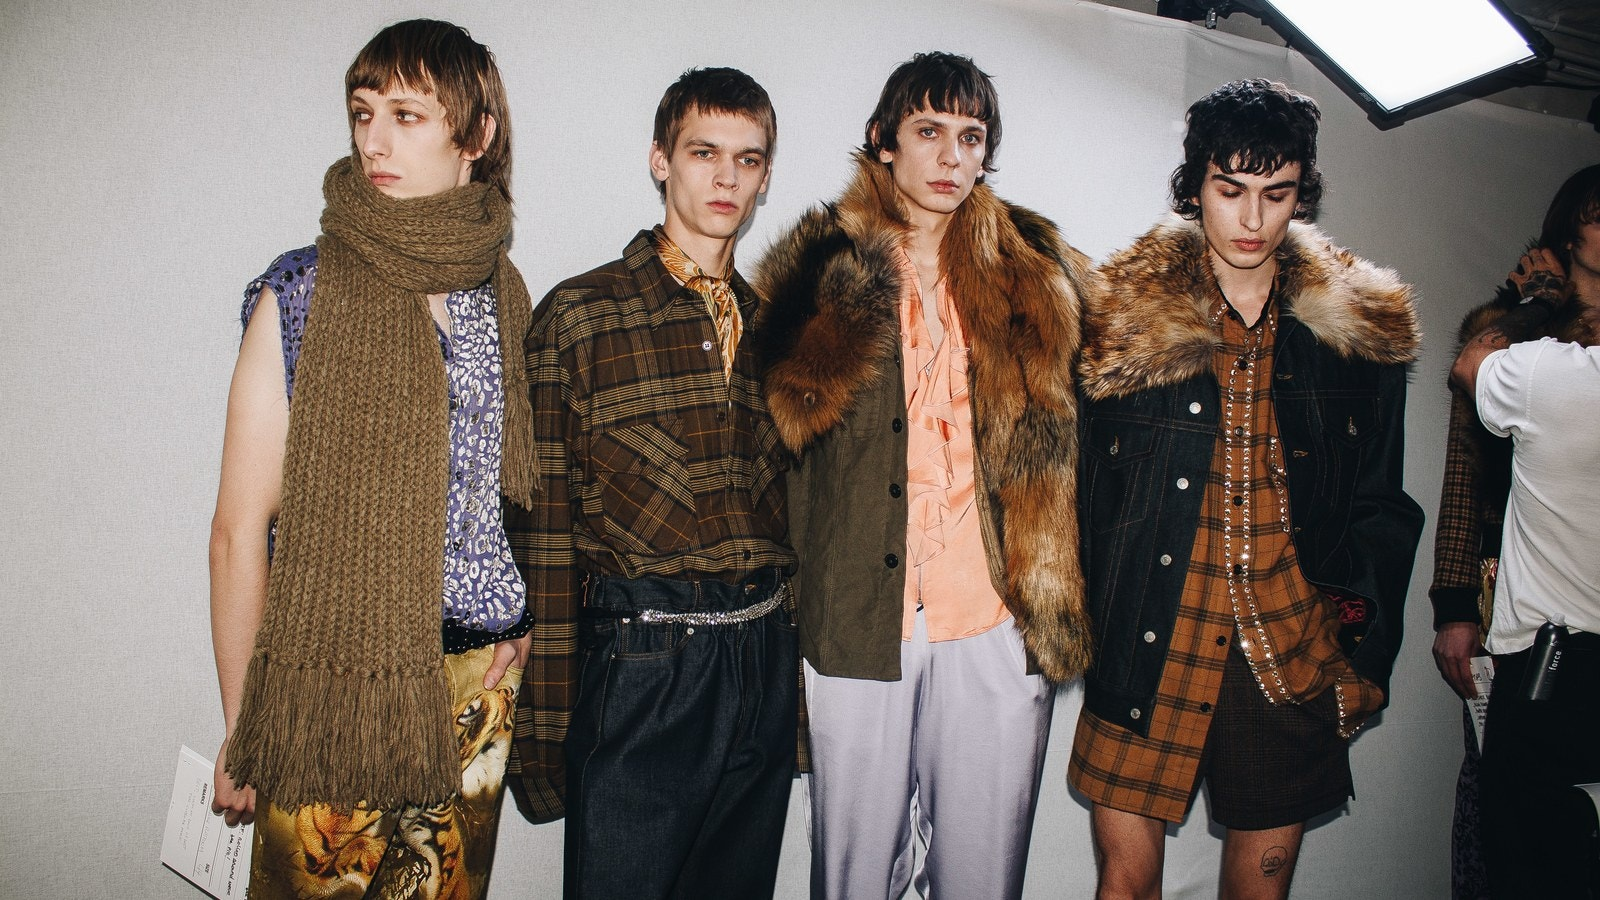 Dries Van Noten Wants You to Play With Your Clothes